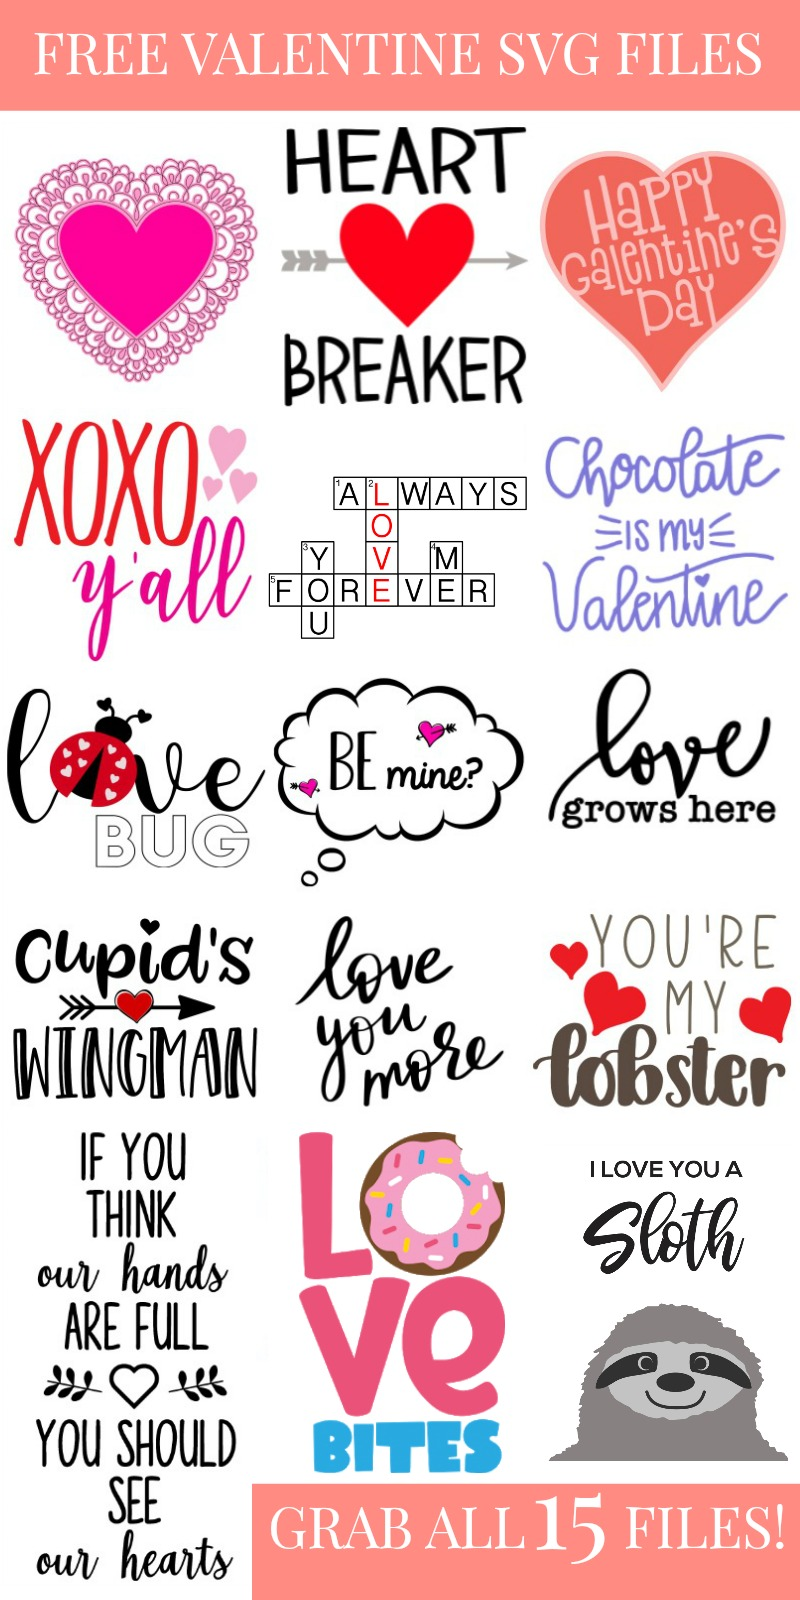 Valentine's Day SVG Files